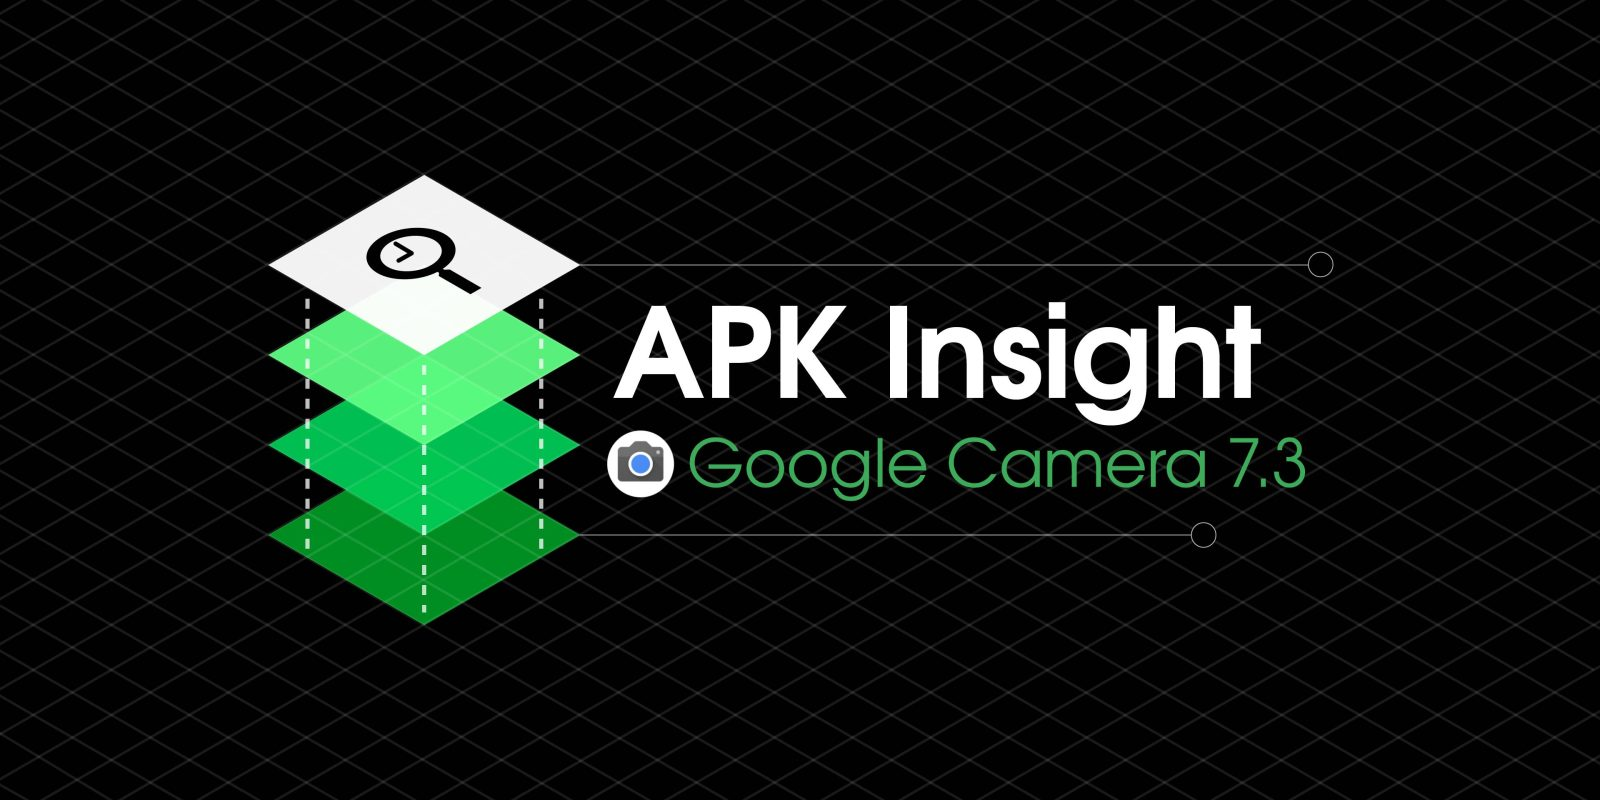 Google Camera 7.3 tweaks flash menu, hints at 24FPS video and Pixel 4a [APK Insight]